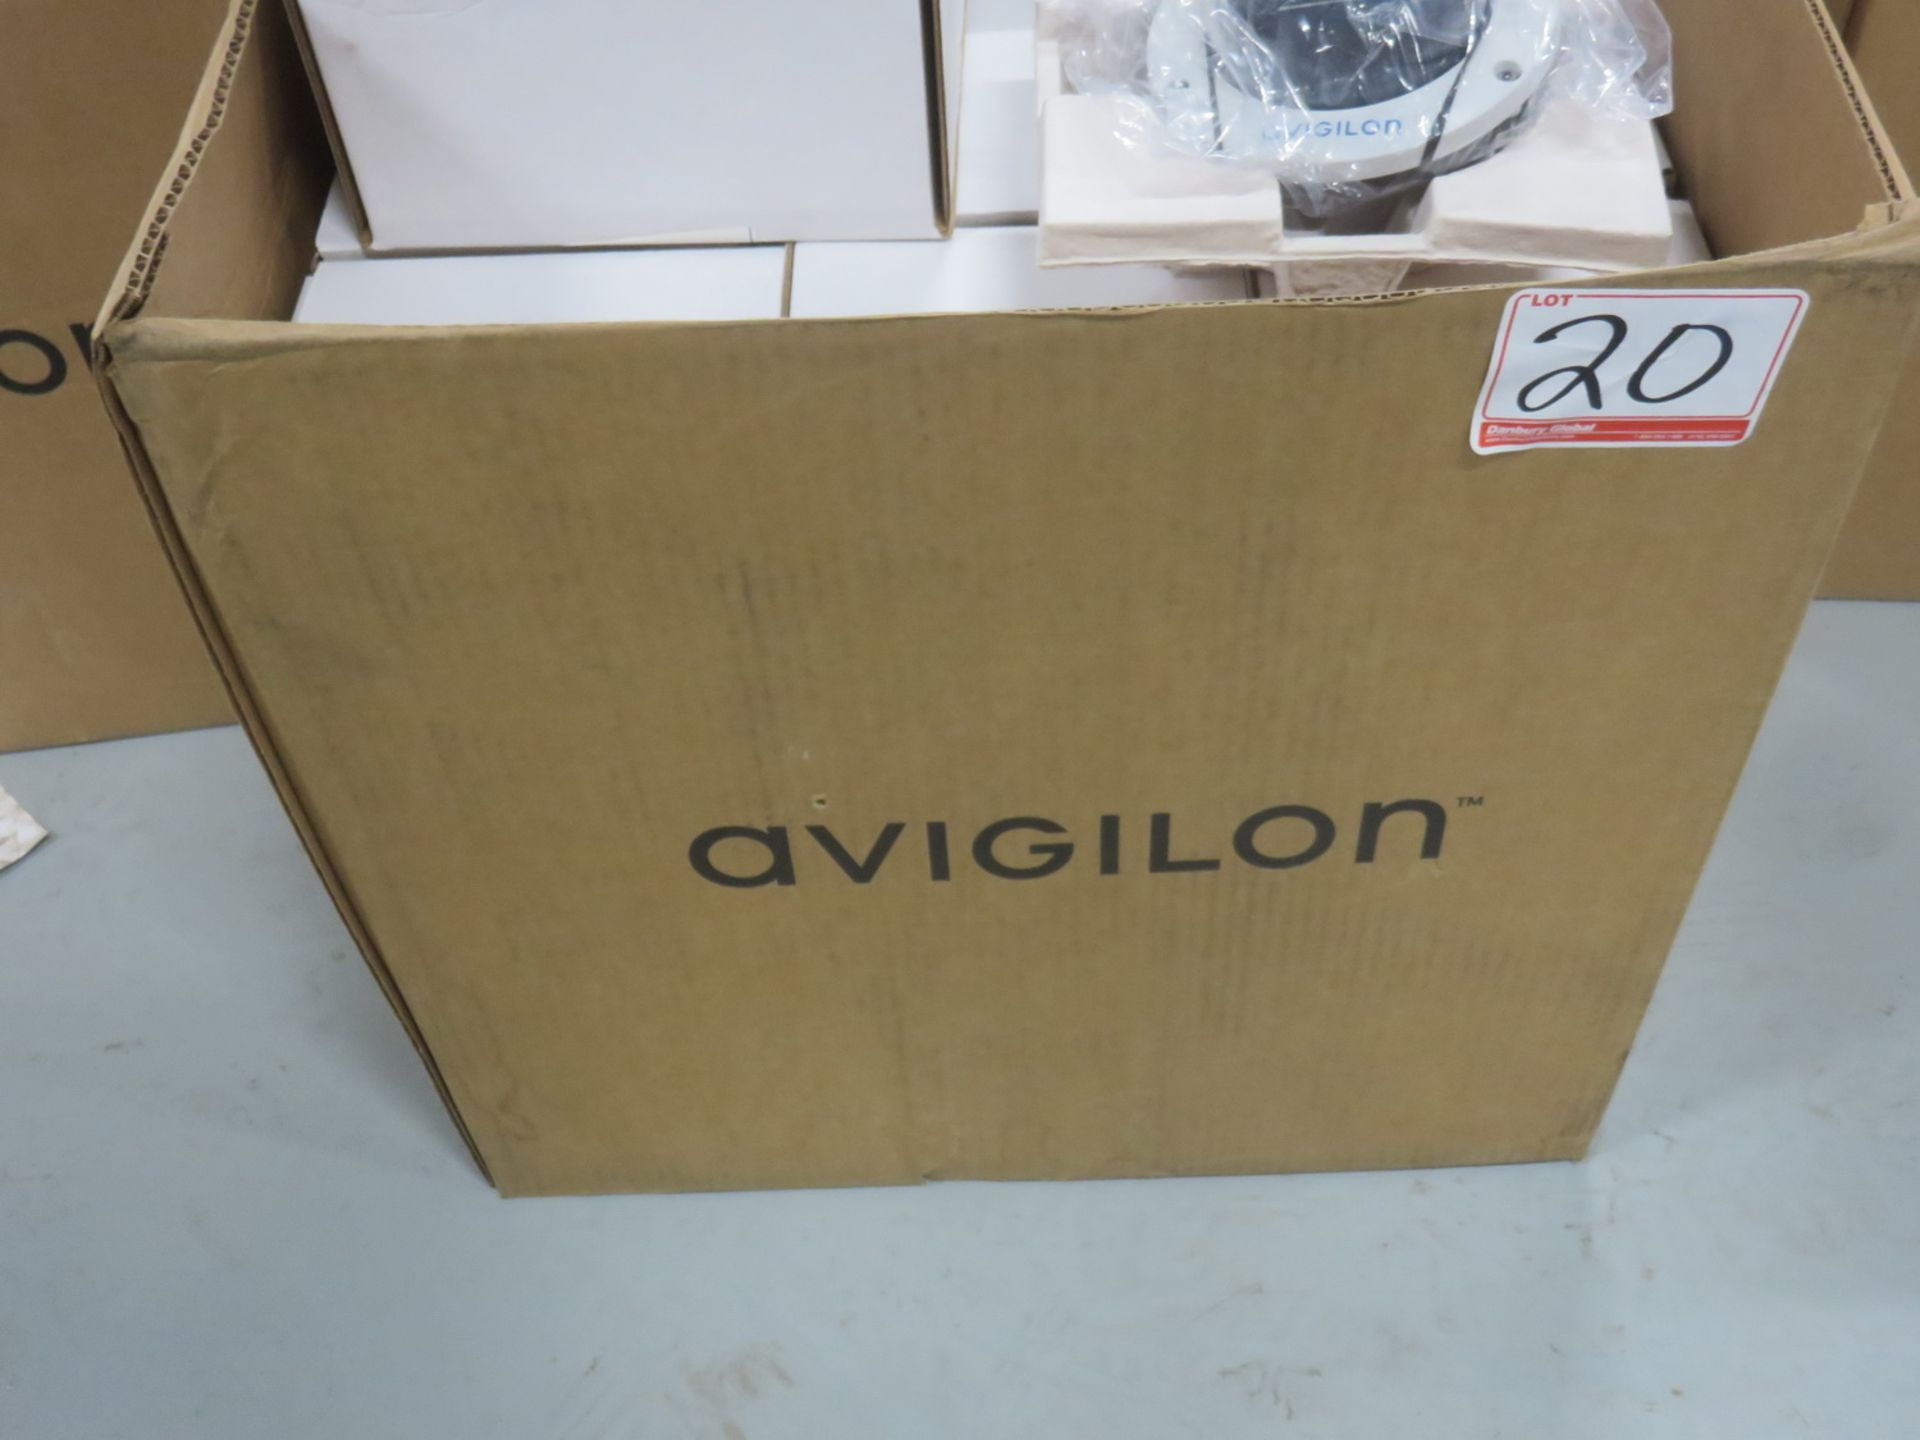 Lot 20 - UNITS - NEW - AVIGILON MODEL (1.3C-H4SL-DO1-IR) DOME SECURITY CAMERAS WITH LIGHT-CATCHER